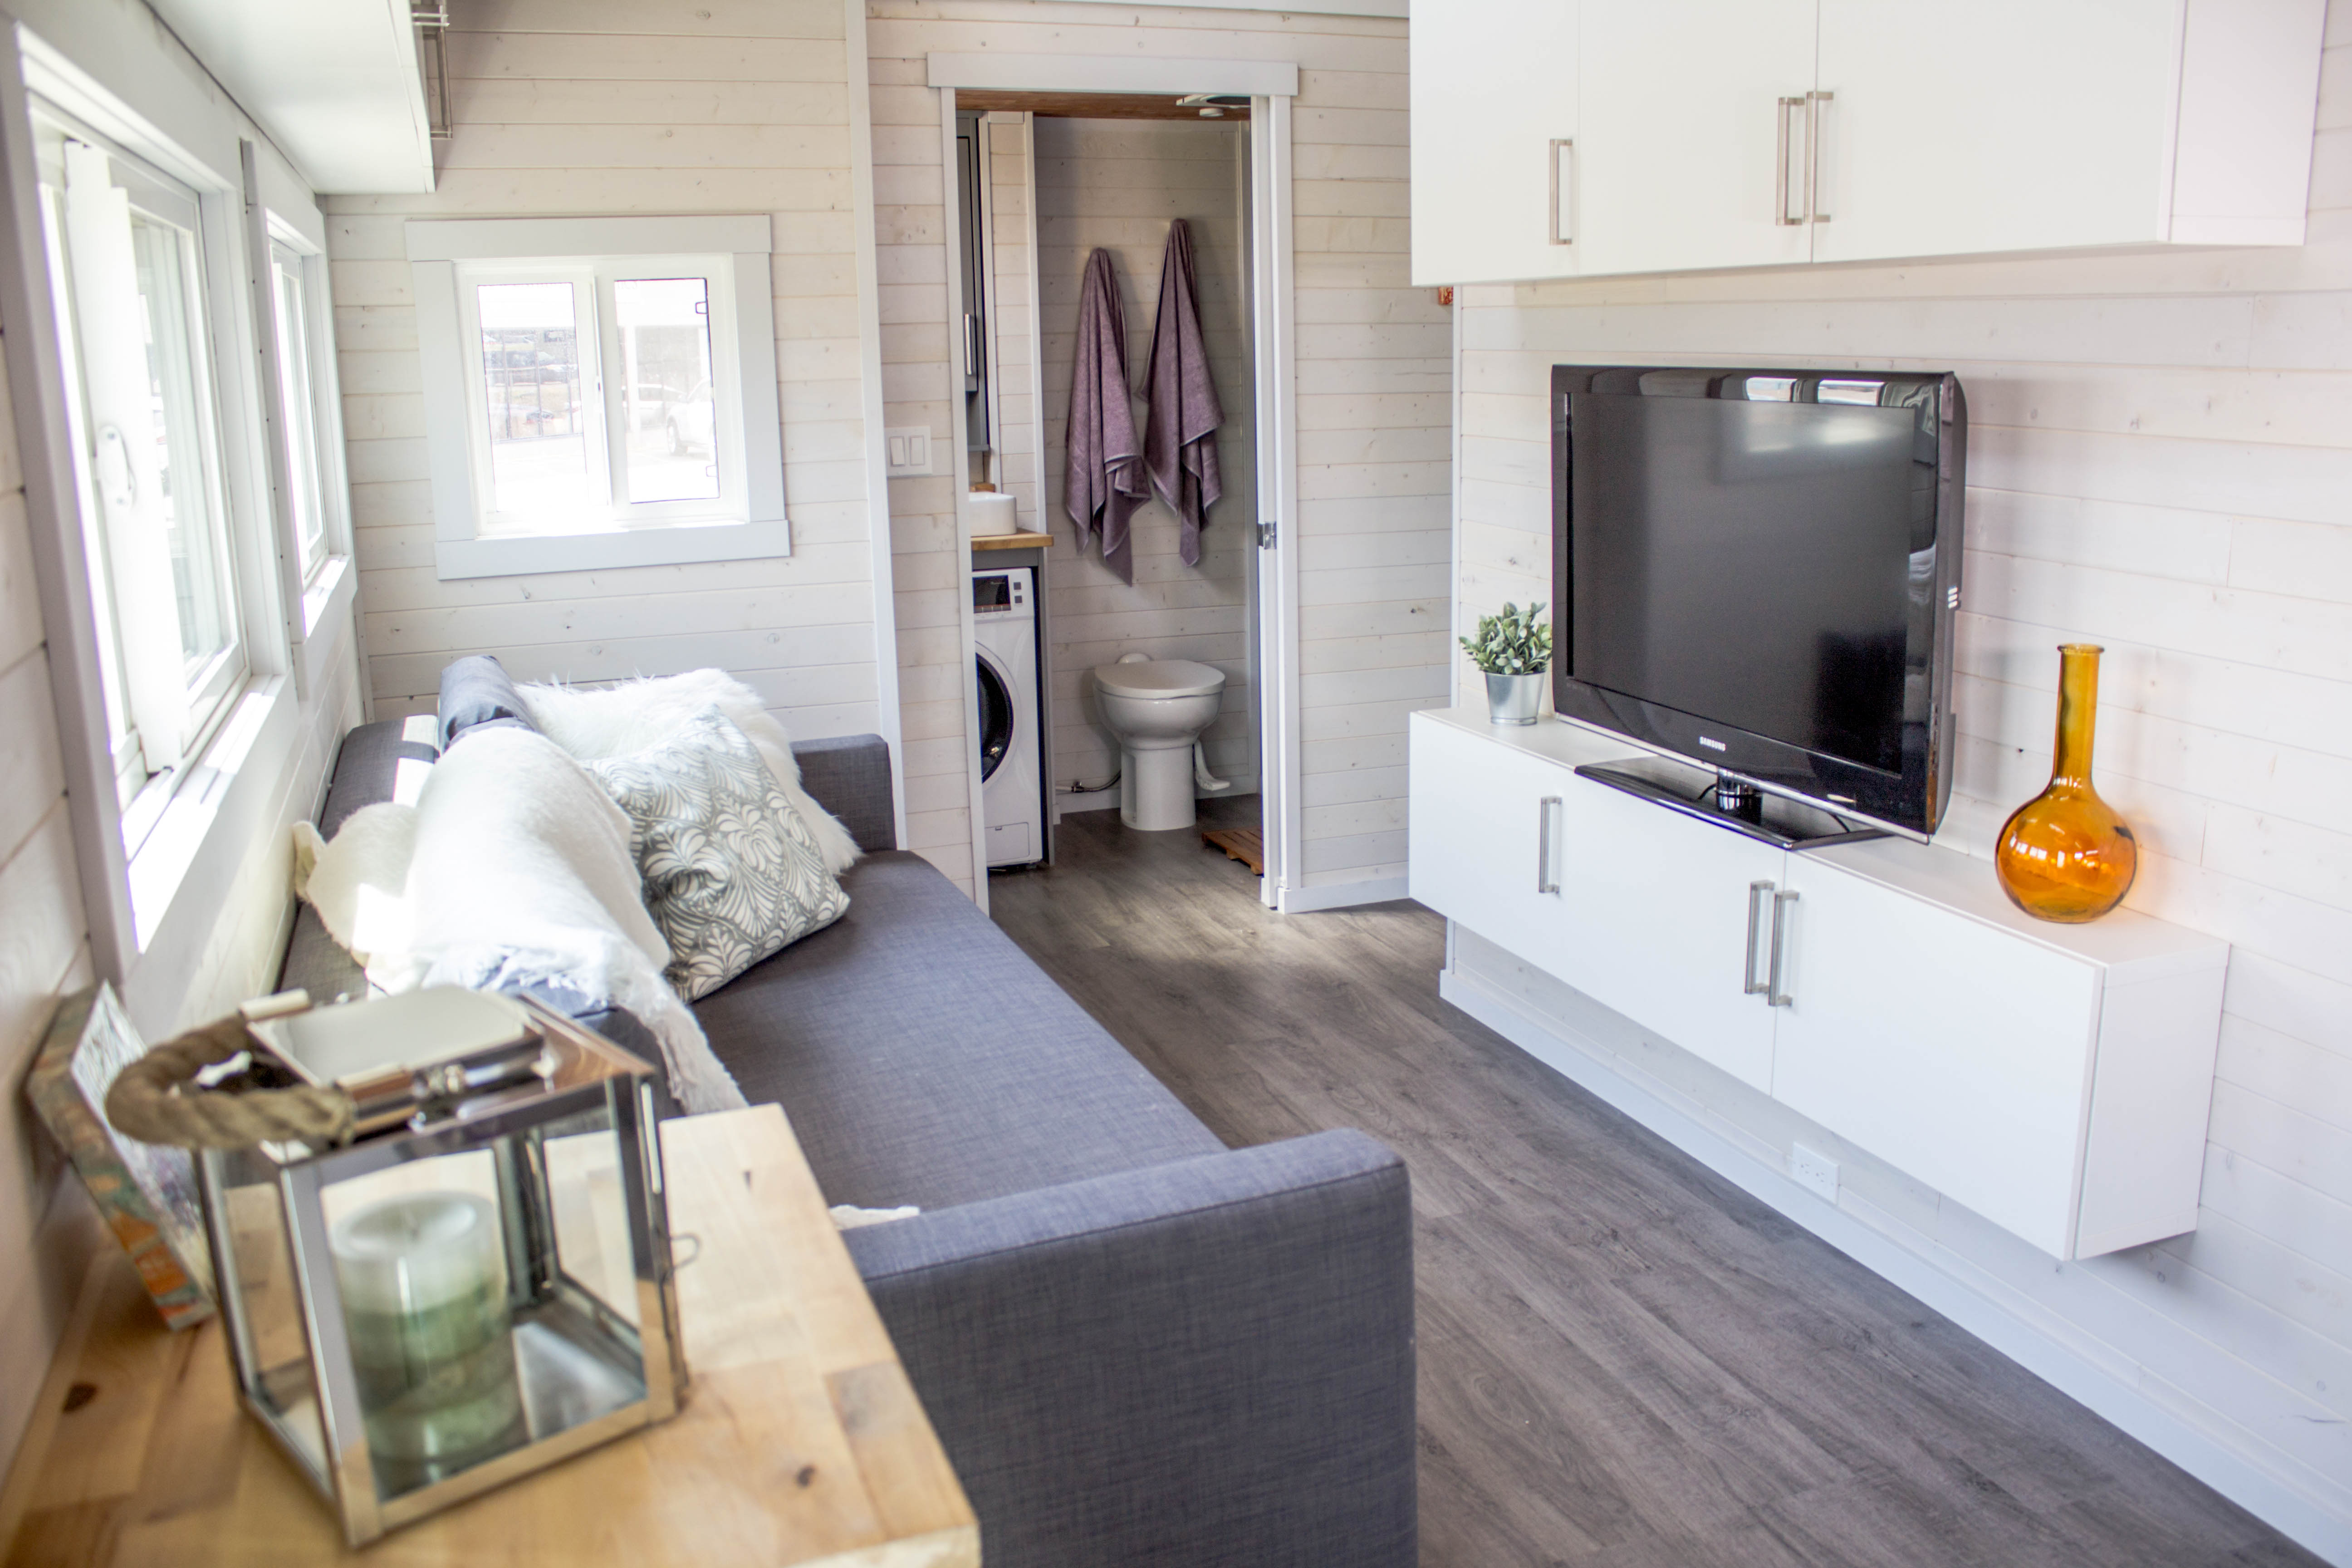 Tiny house pops out for extra space - Curbed